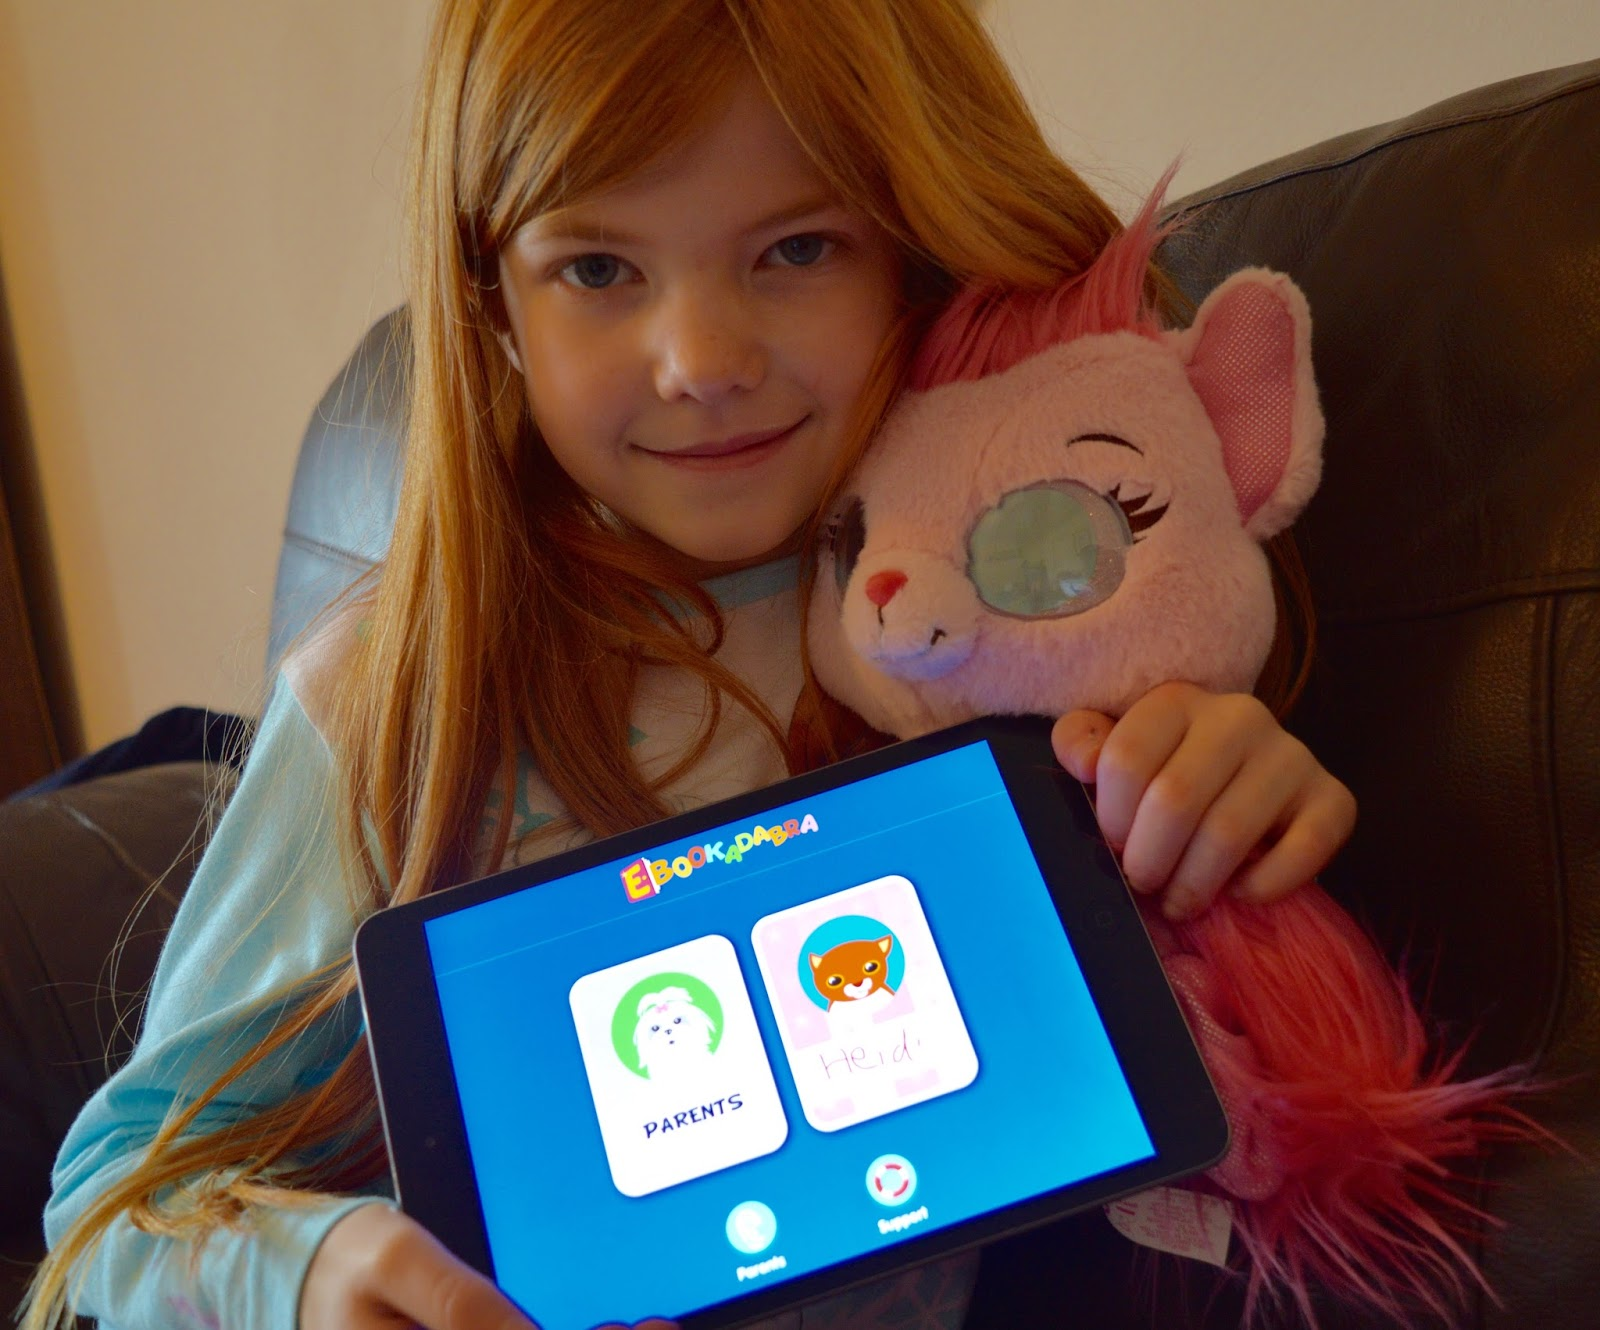 Ebookadabra Review | A reading app for children aged 3-7 with stories from Disney, Harper Collins, Bloomsbury and more